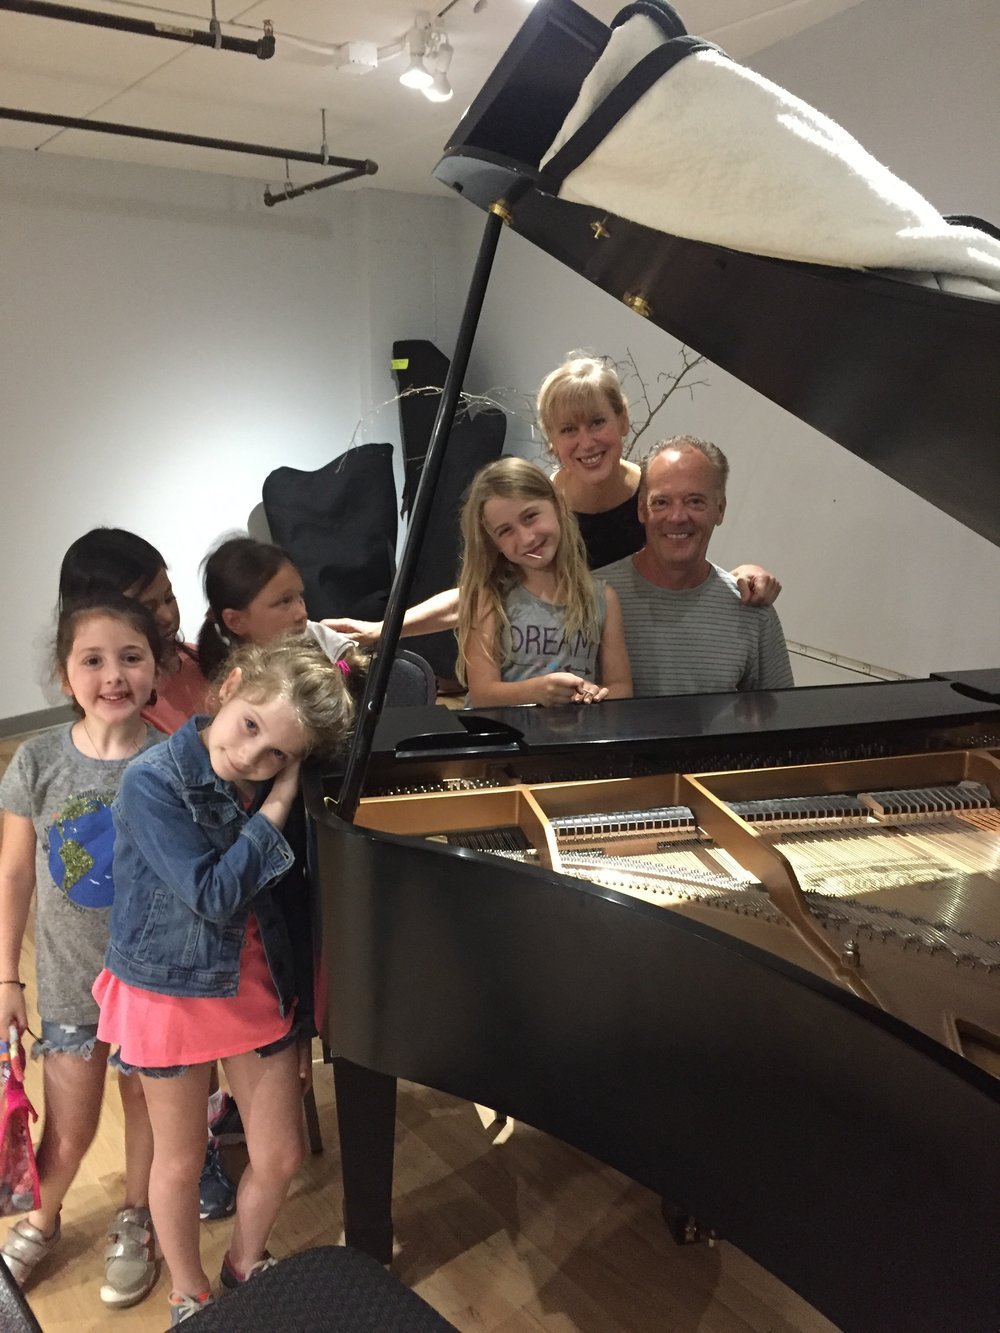 TheaterClass 4 Kids! working with world class pianist Chuck Lamb and Warner Chappell Singer Songwriter Ria Curley!